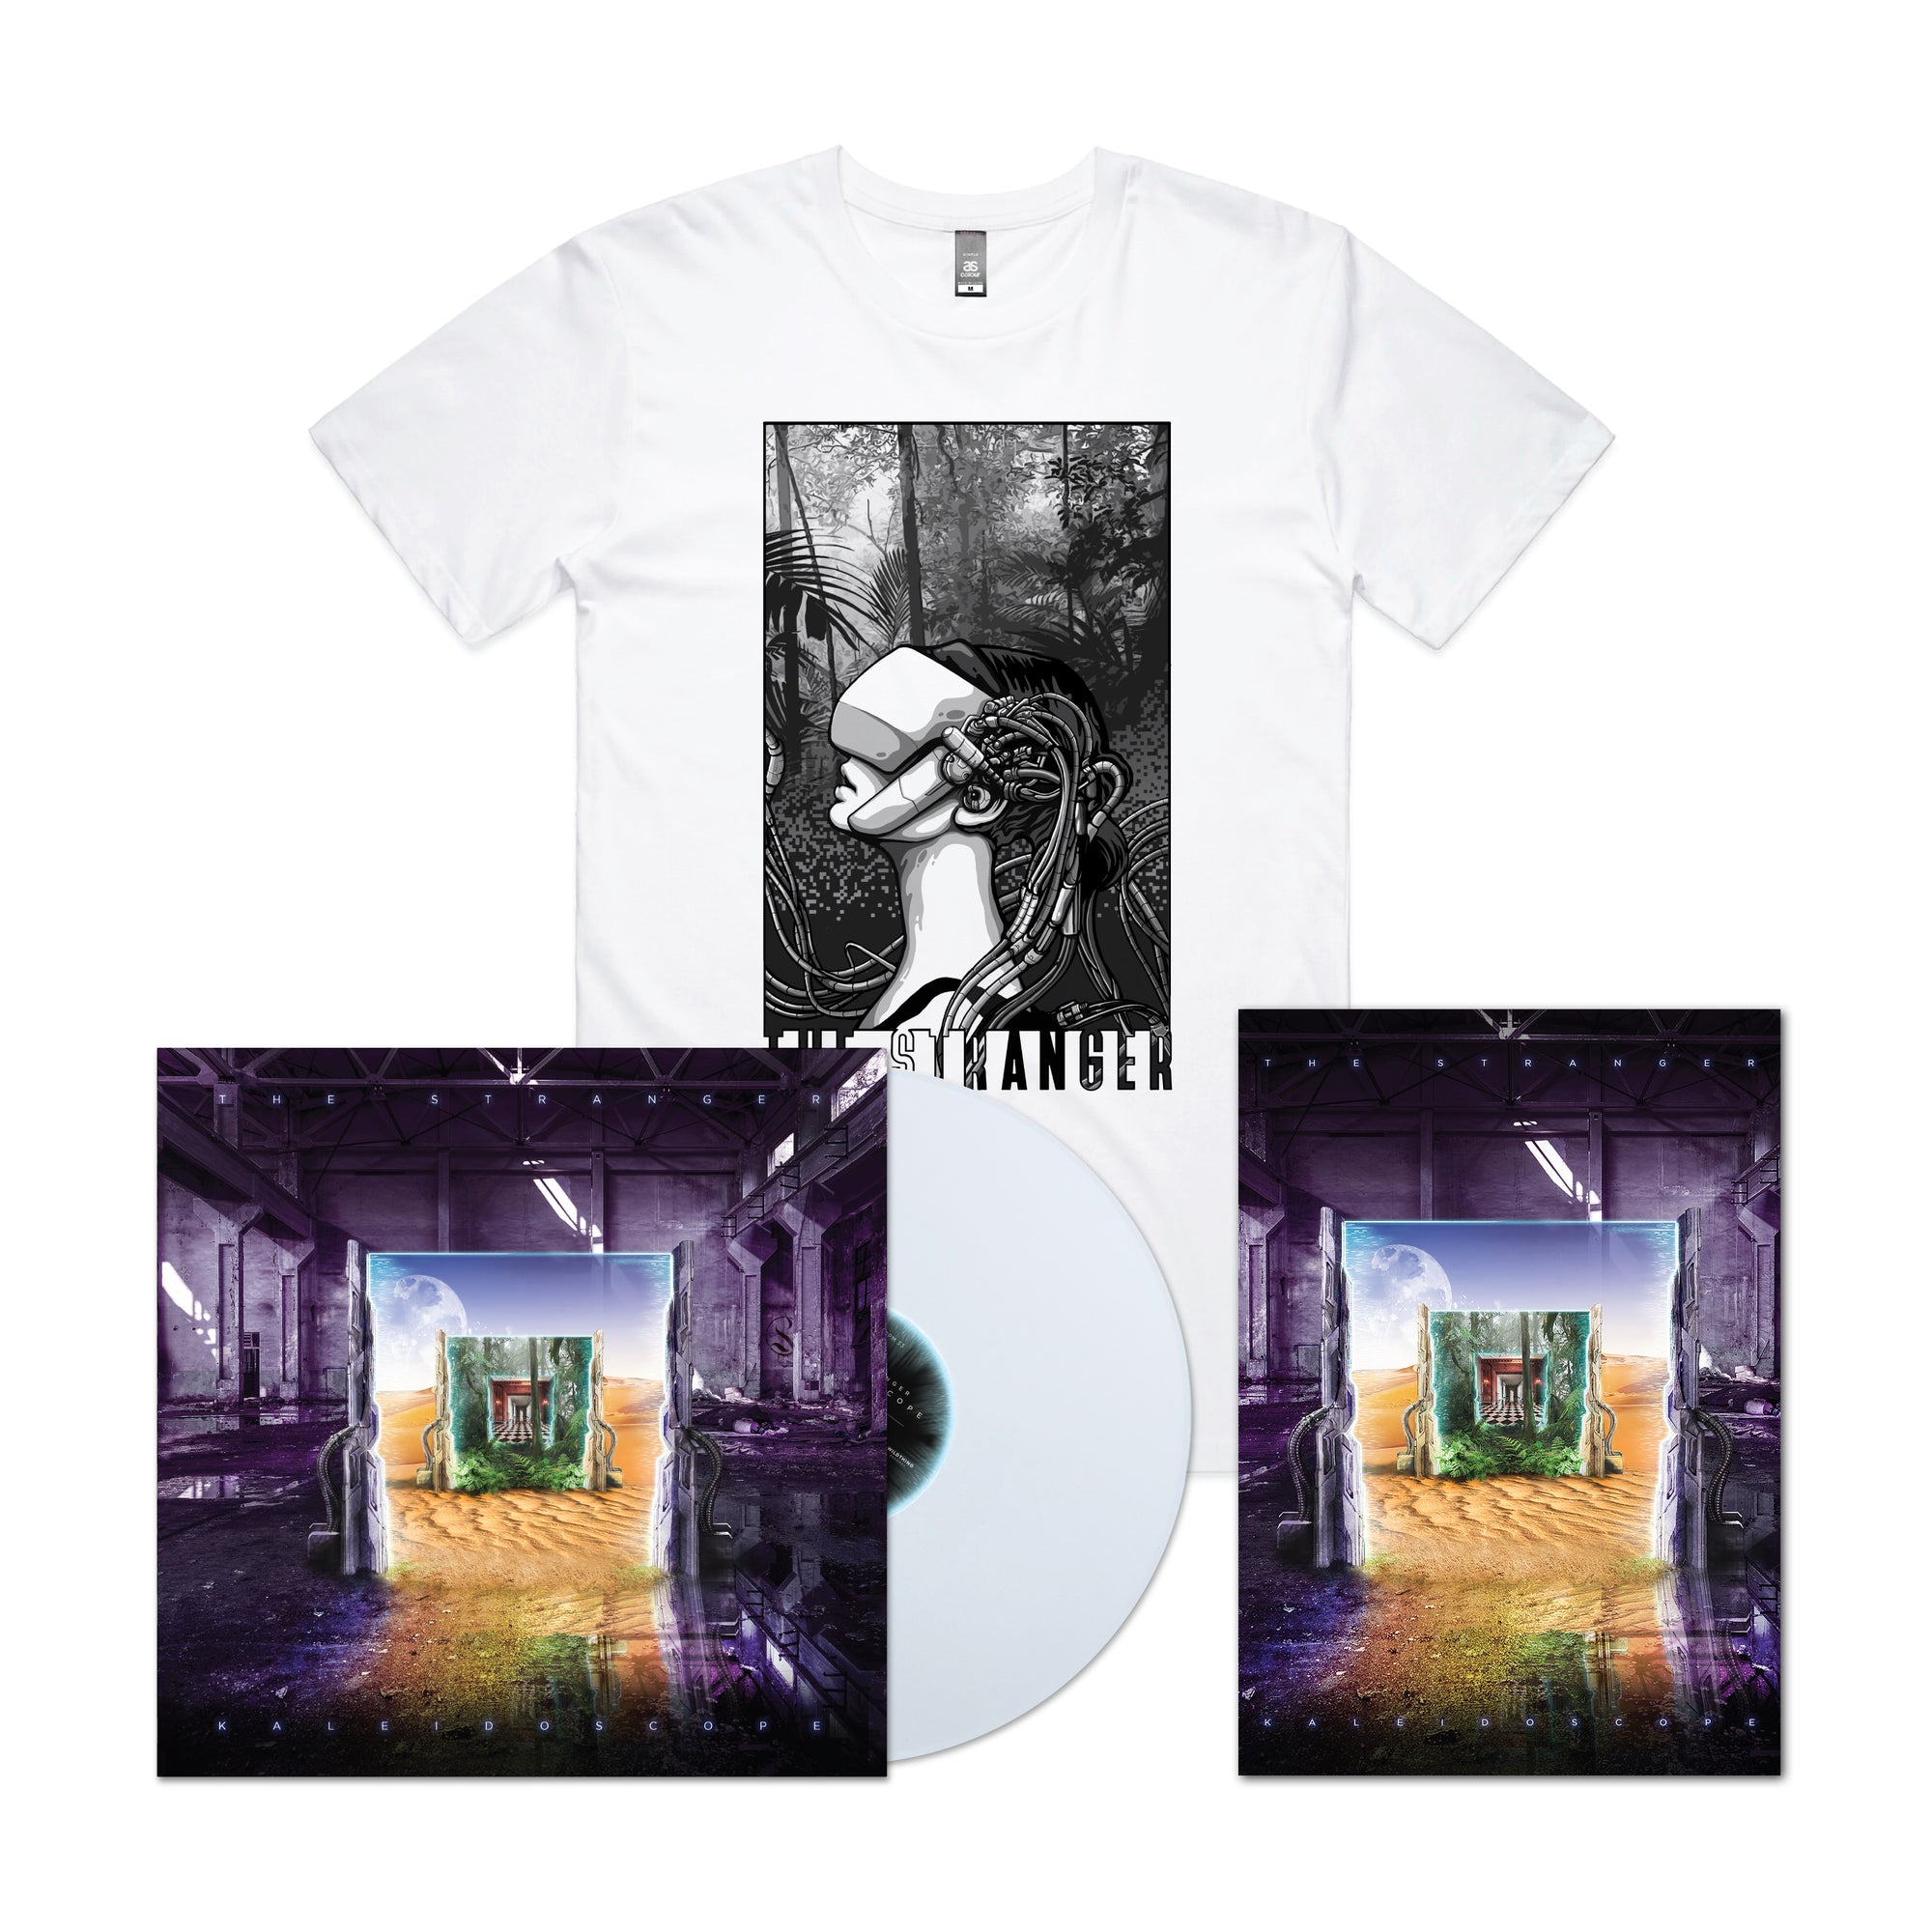 THE STRANGER // KALEIDOSCOPE - VINYL BUNDLE